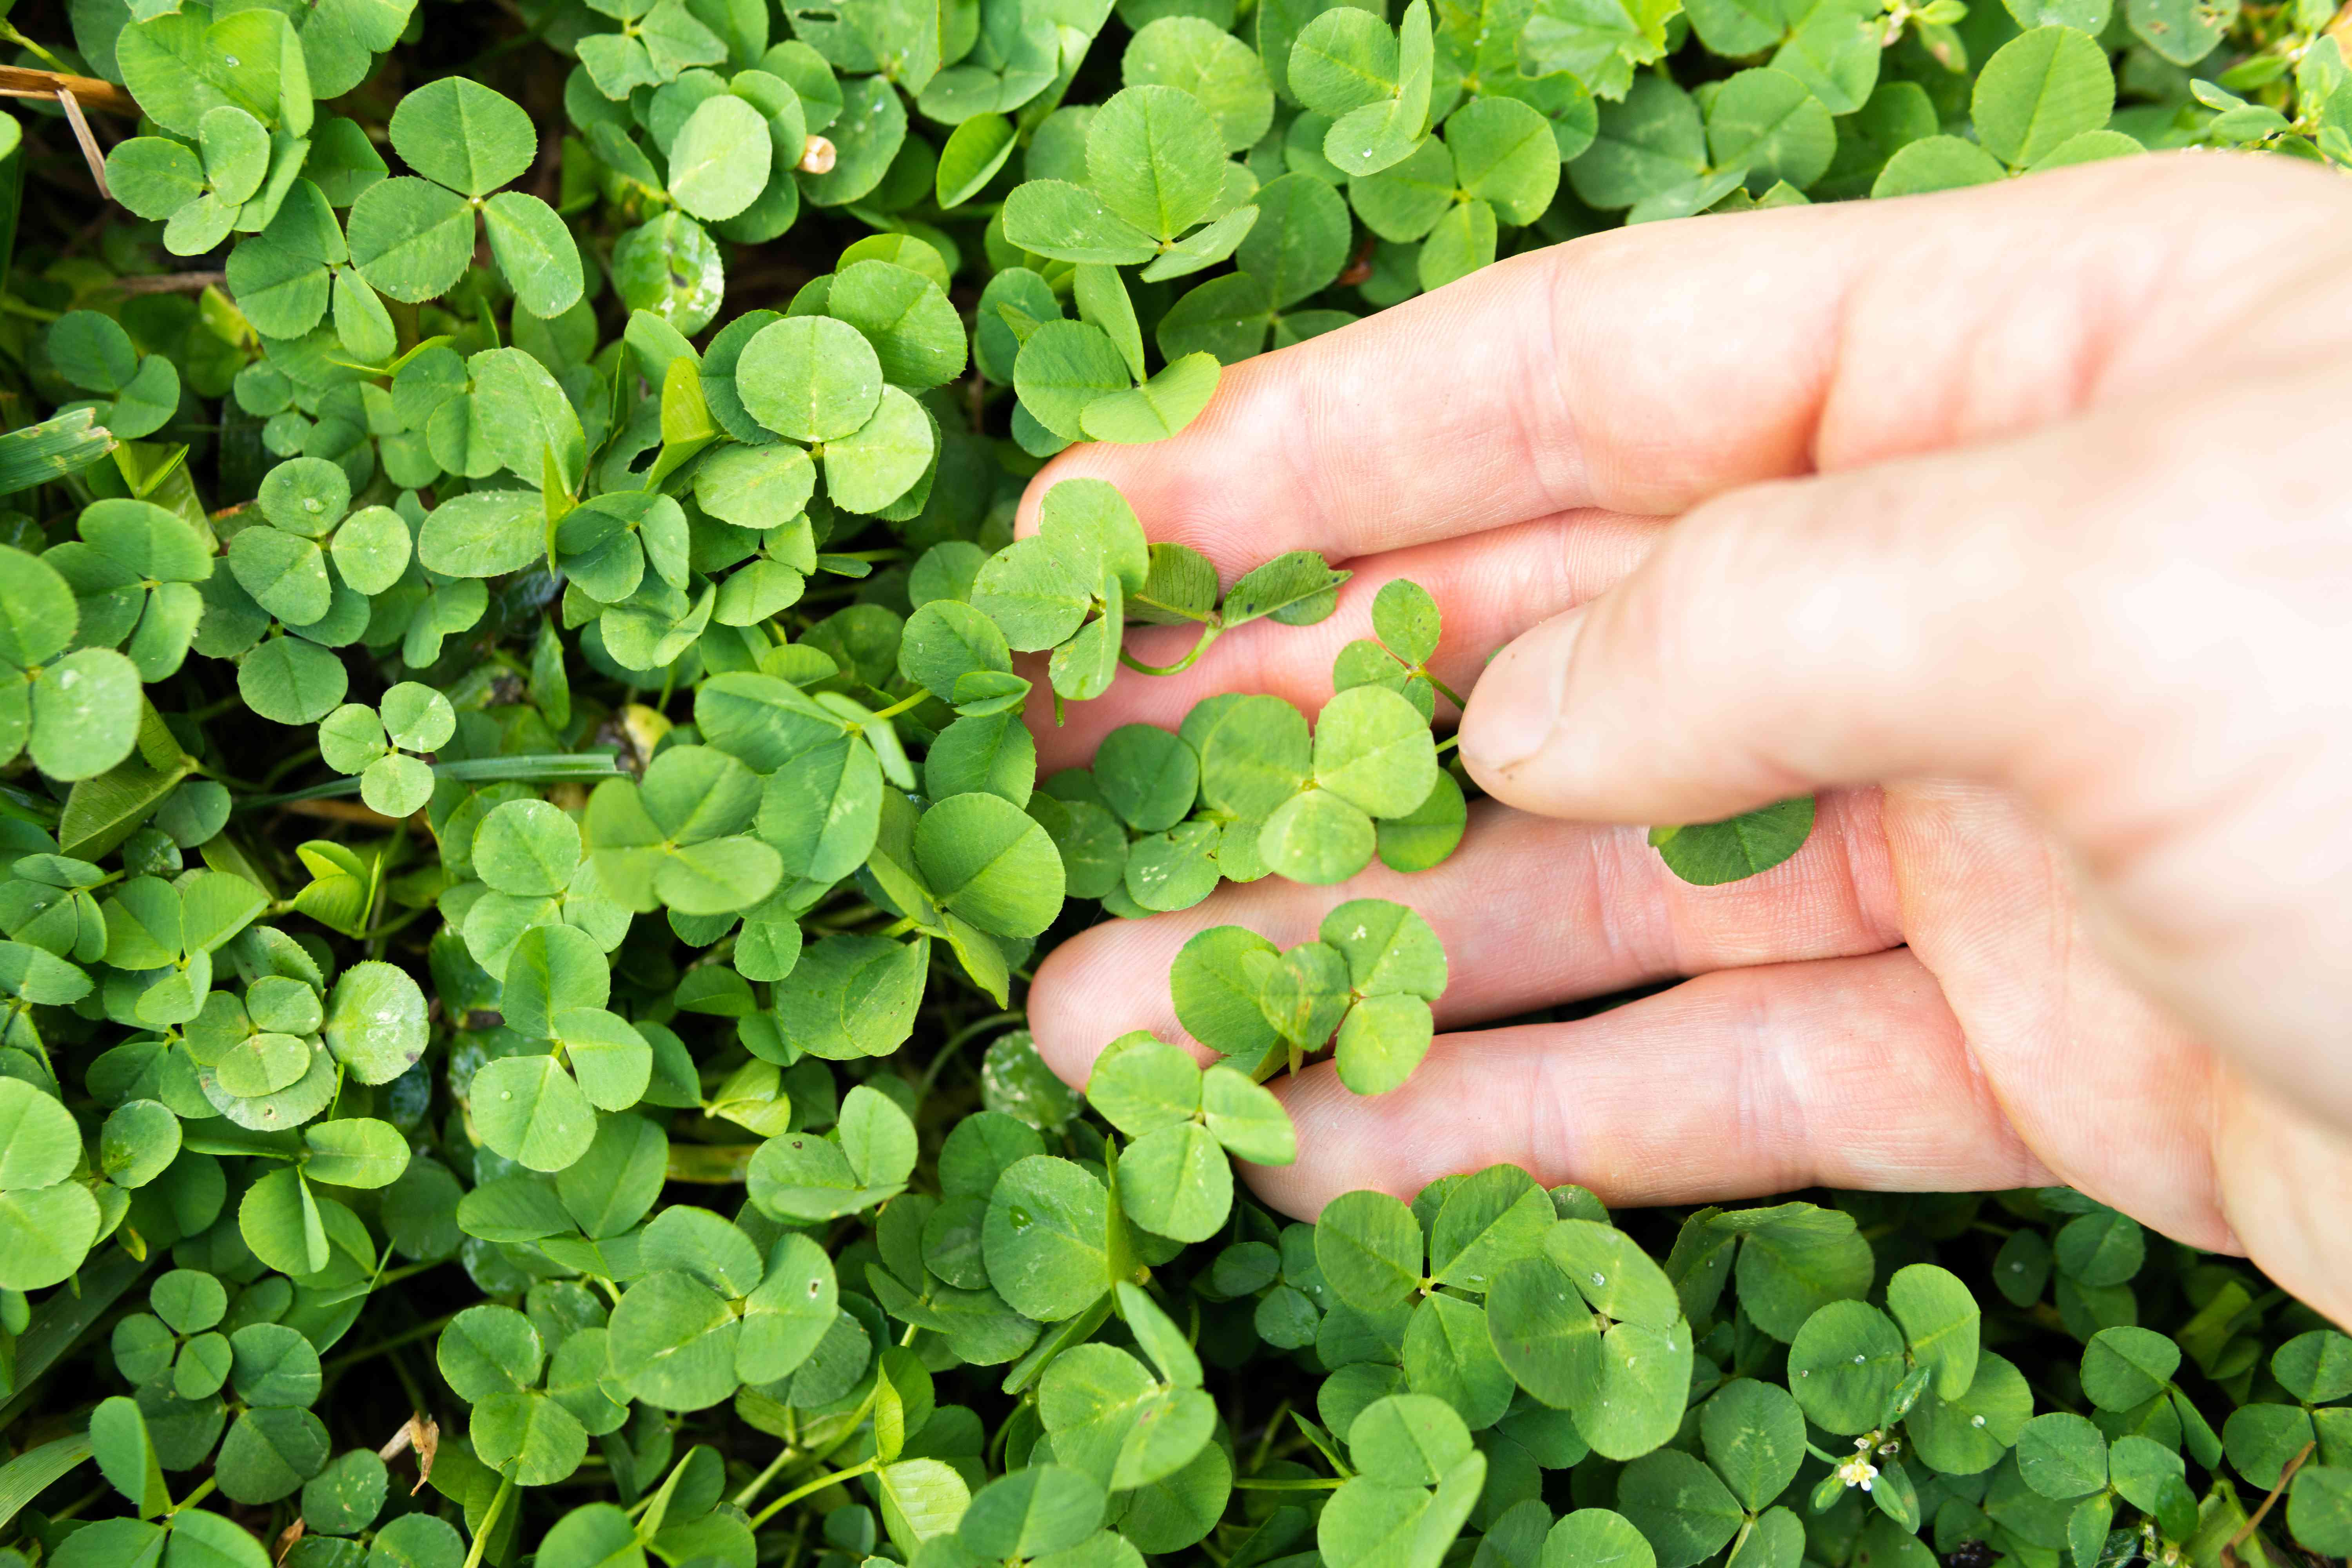 hands touching small clover leaves